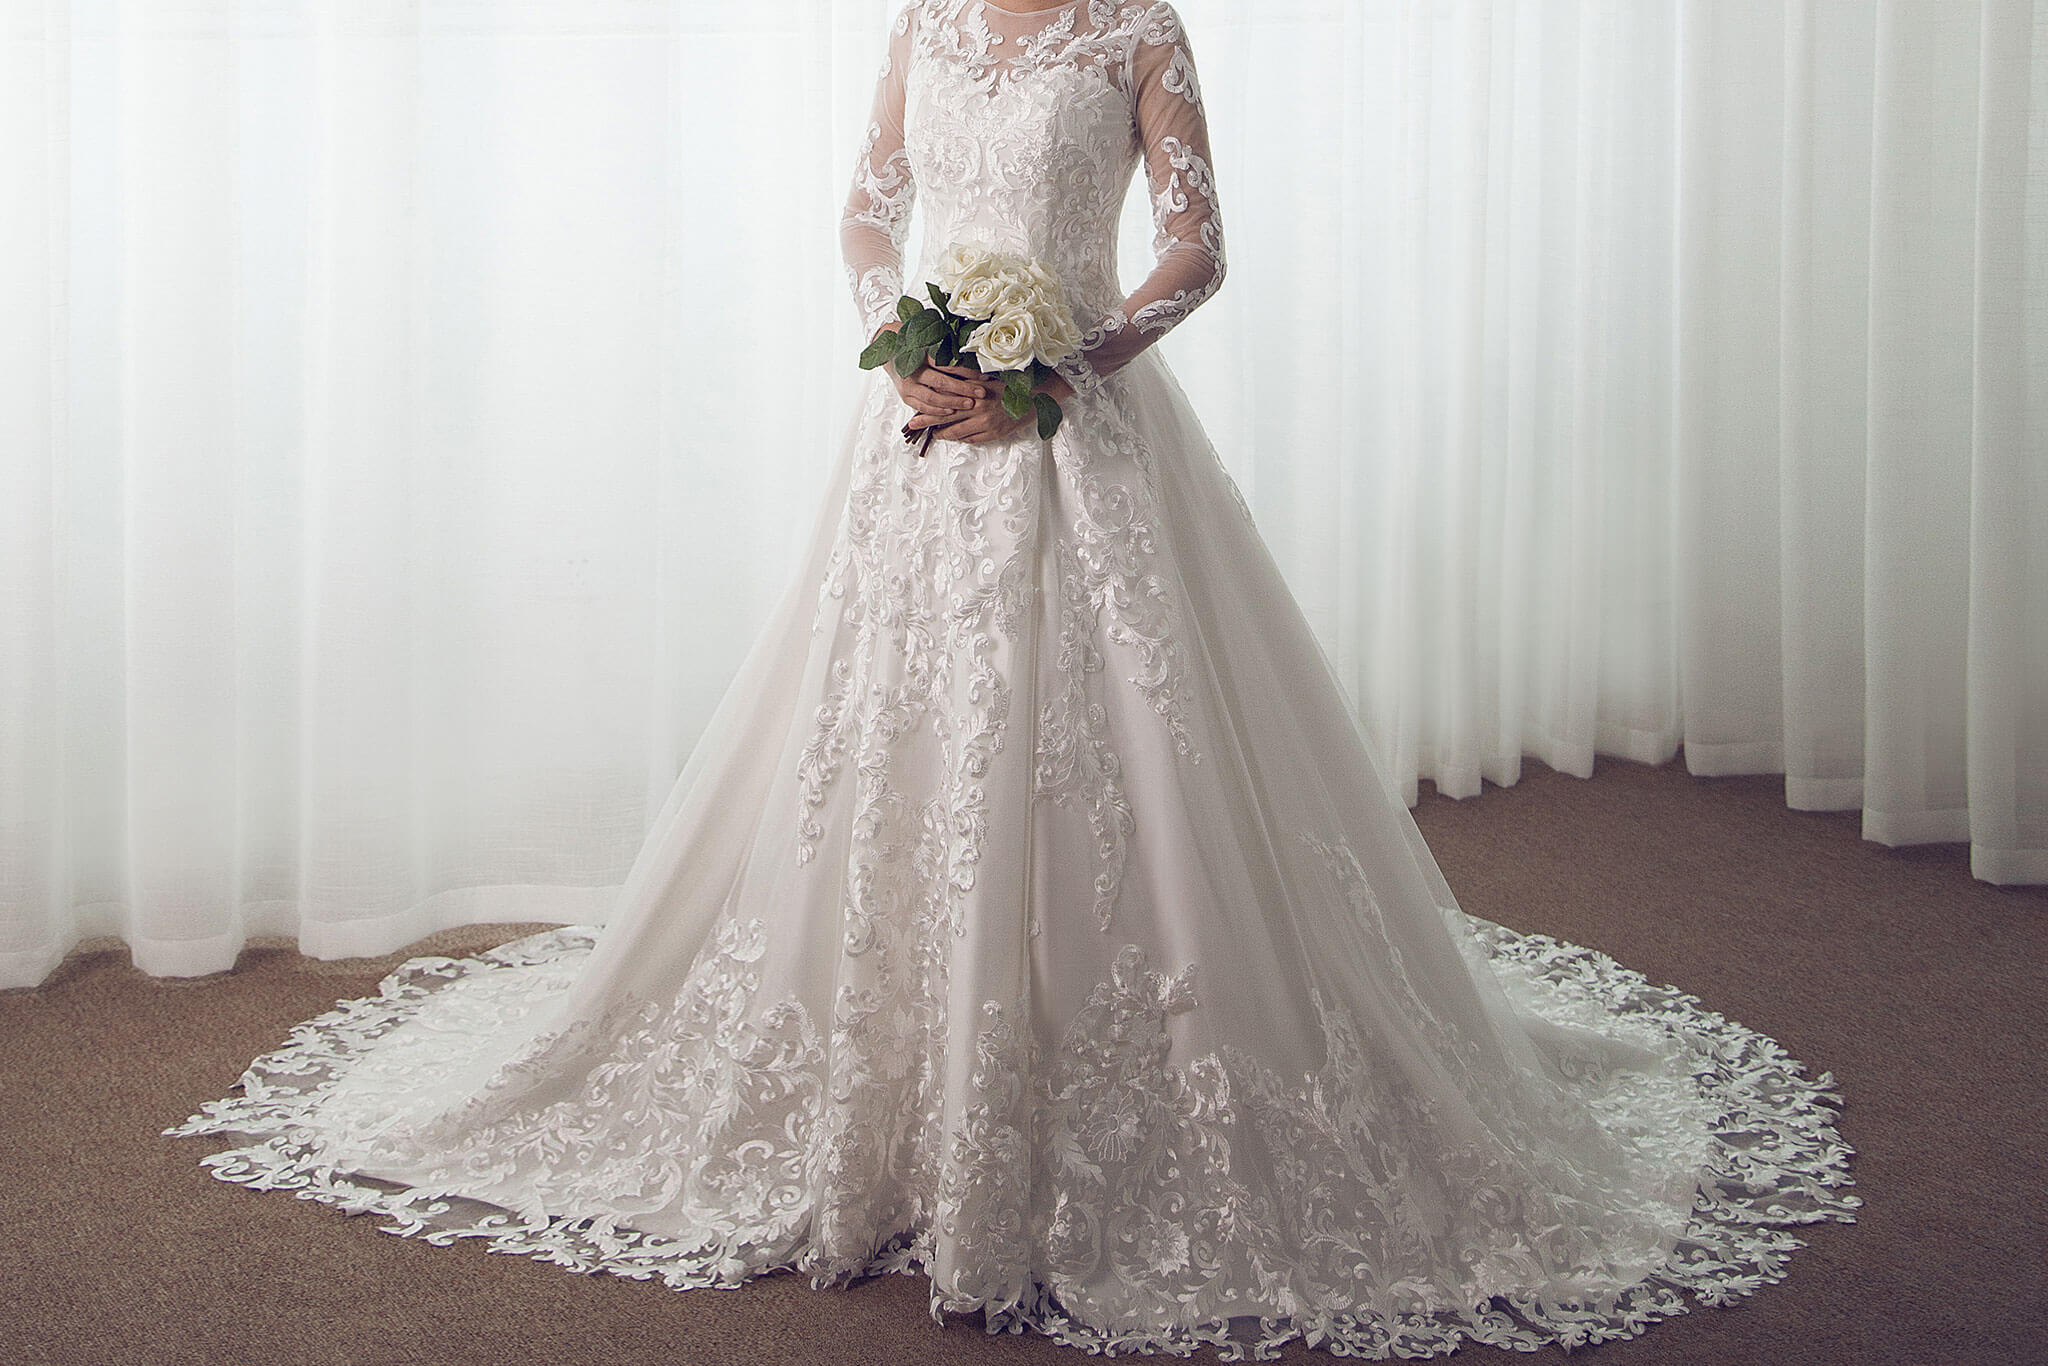 7 Popular Types Of Bridal Lace Fabrics Cocomelody Mag